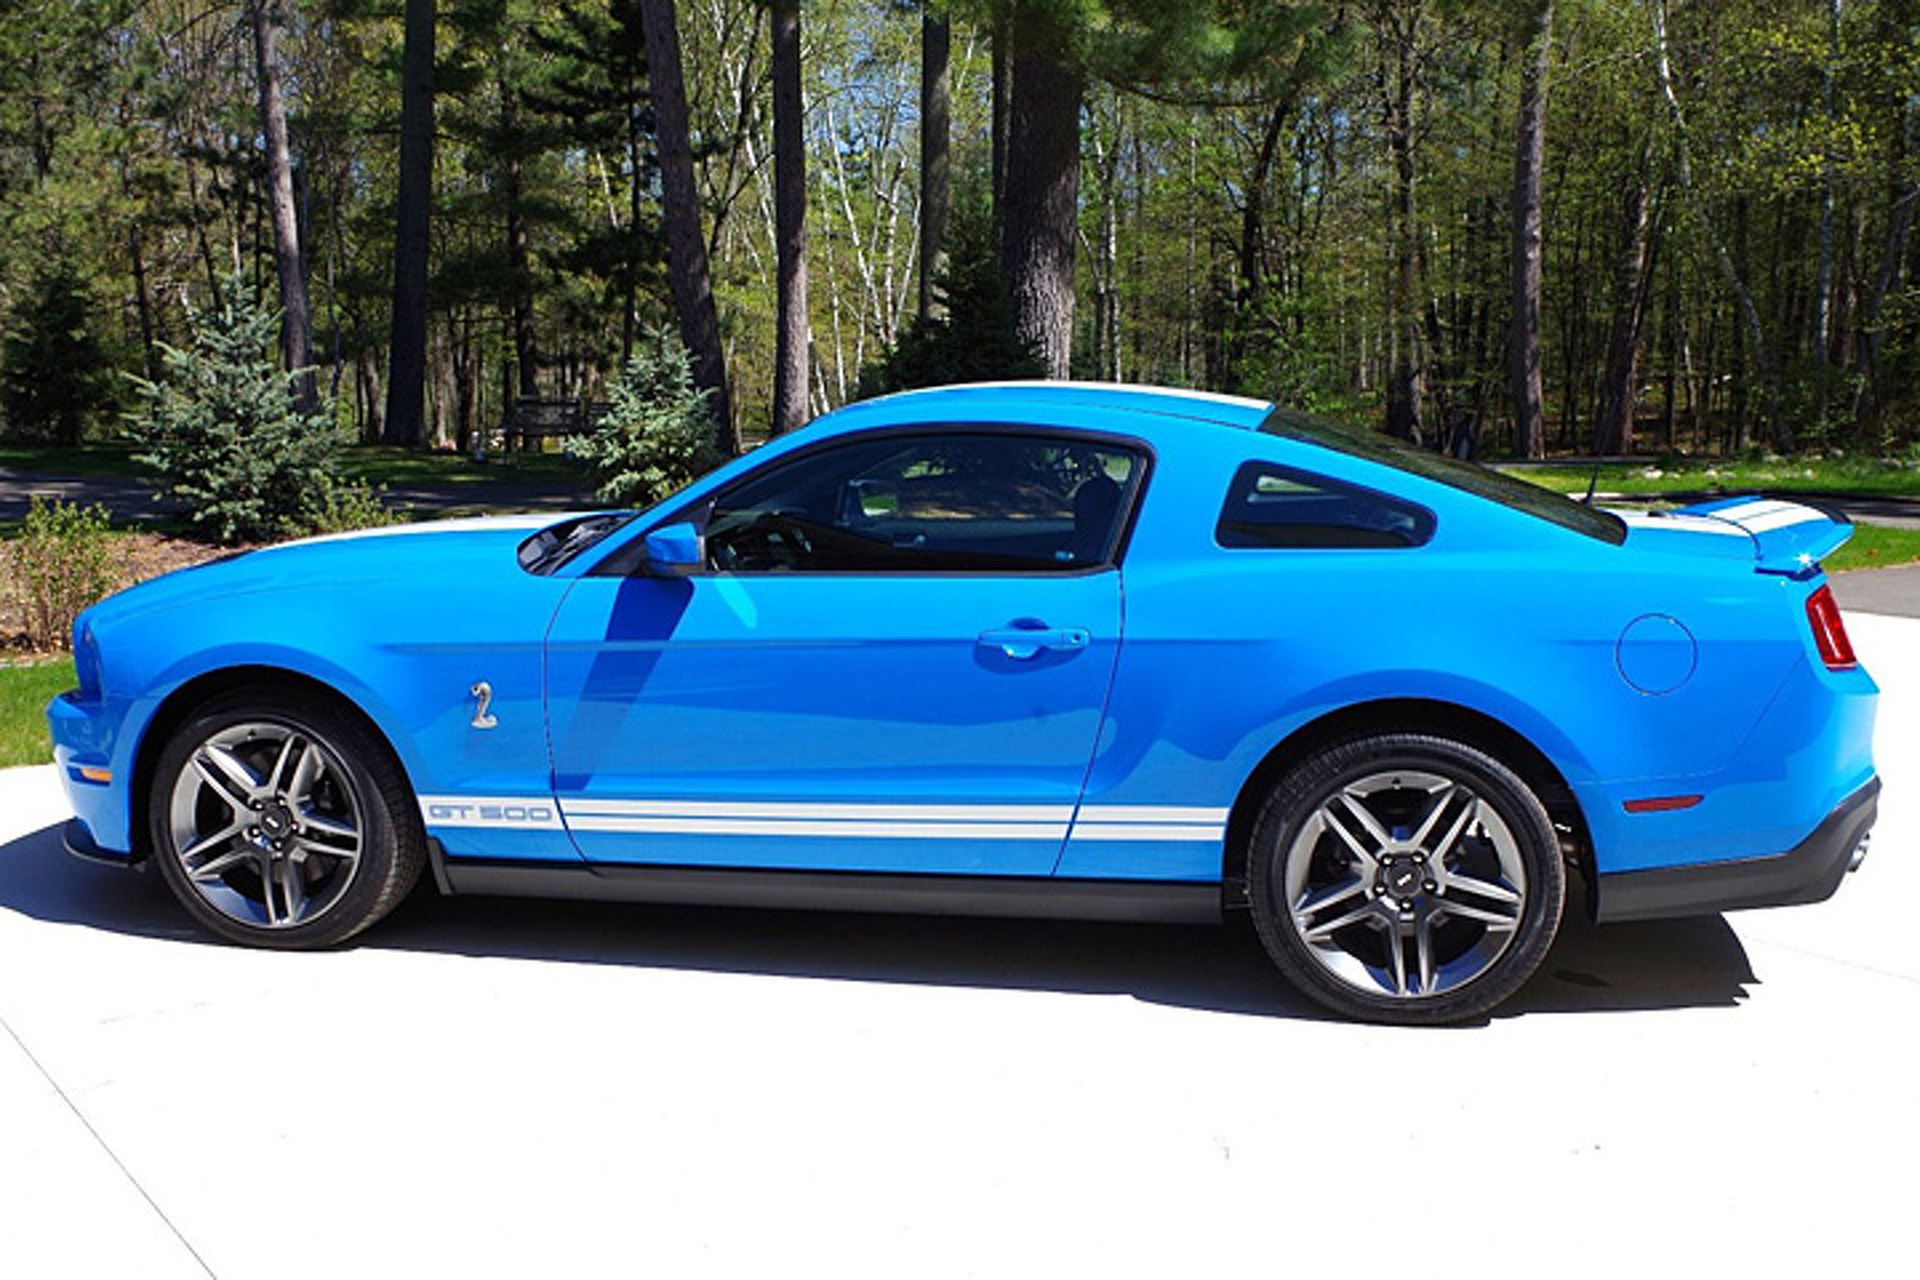 For sale this 2010 mustang shelby gt500 has driven just 21 miles